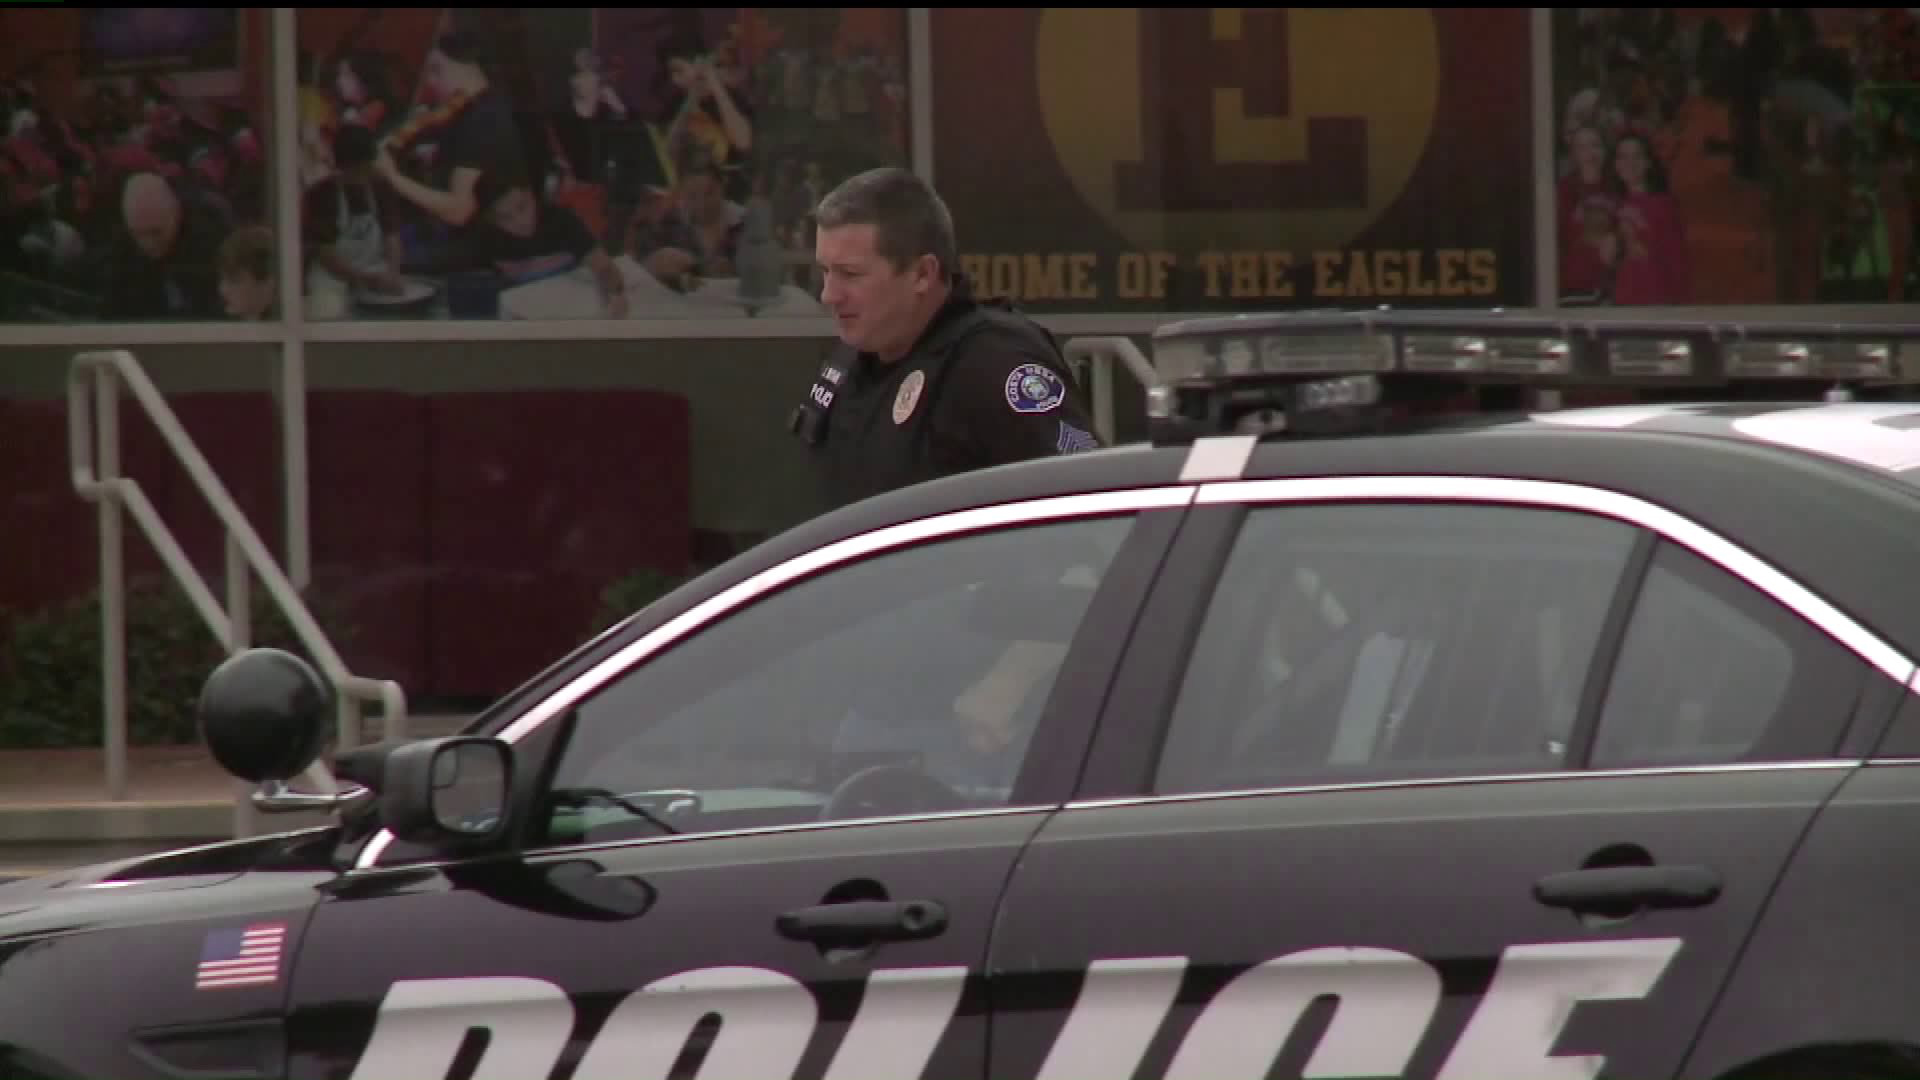 A police officer is seen on the campus of Estancia High School in Costa Mesa on Dec. 3, 2019. (Credit: KTLA)